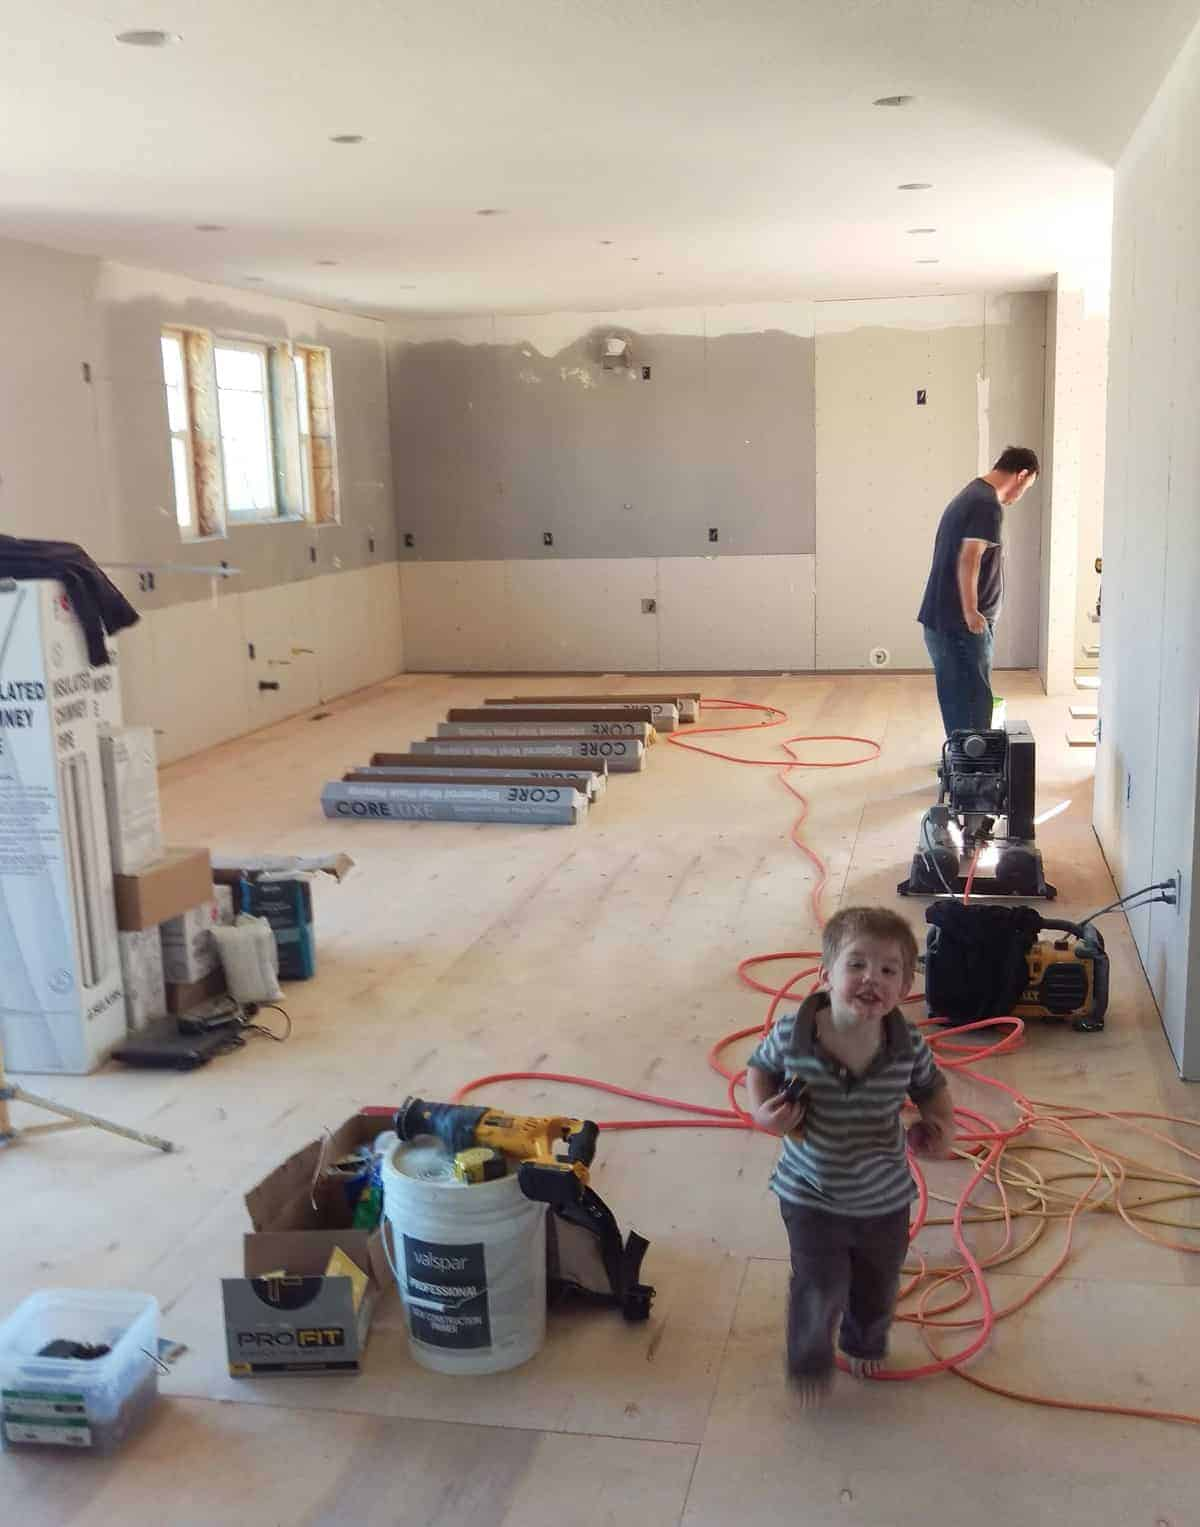 Plumbing and wiring were just not that exciting without big visual changes; getting flooring and cabinets though have changed the whole house. & House Building Updated December 2017: Floors Cabinets and More ...